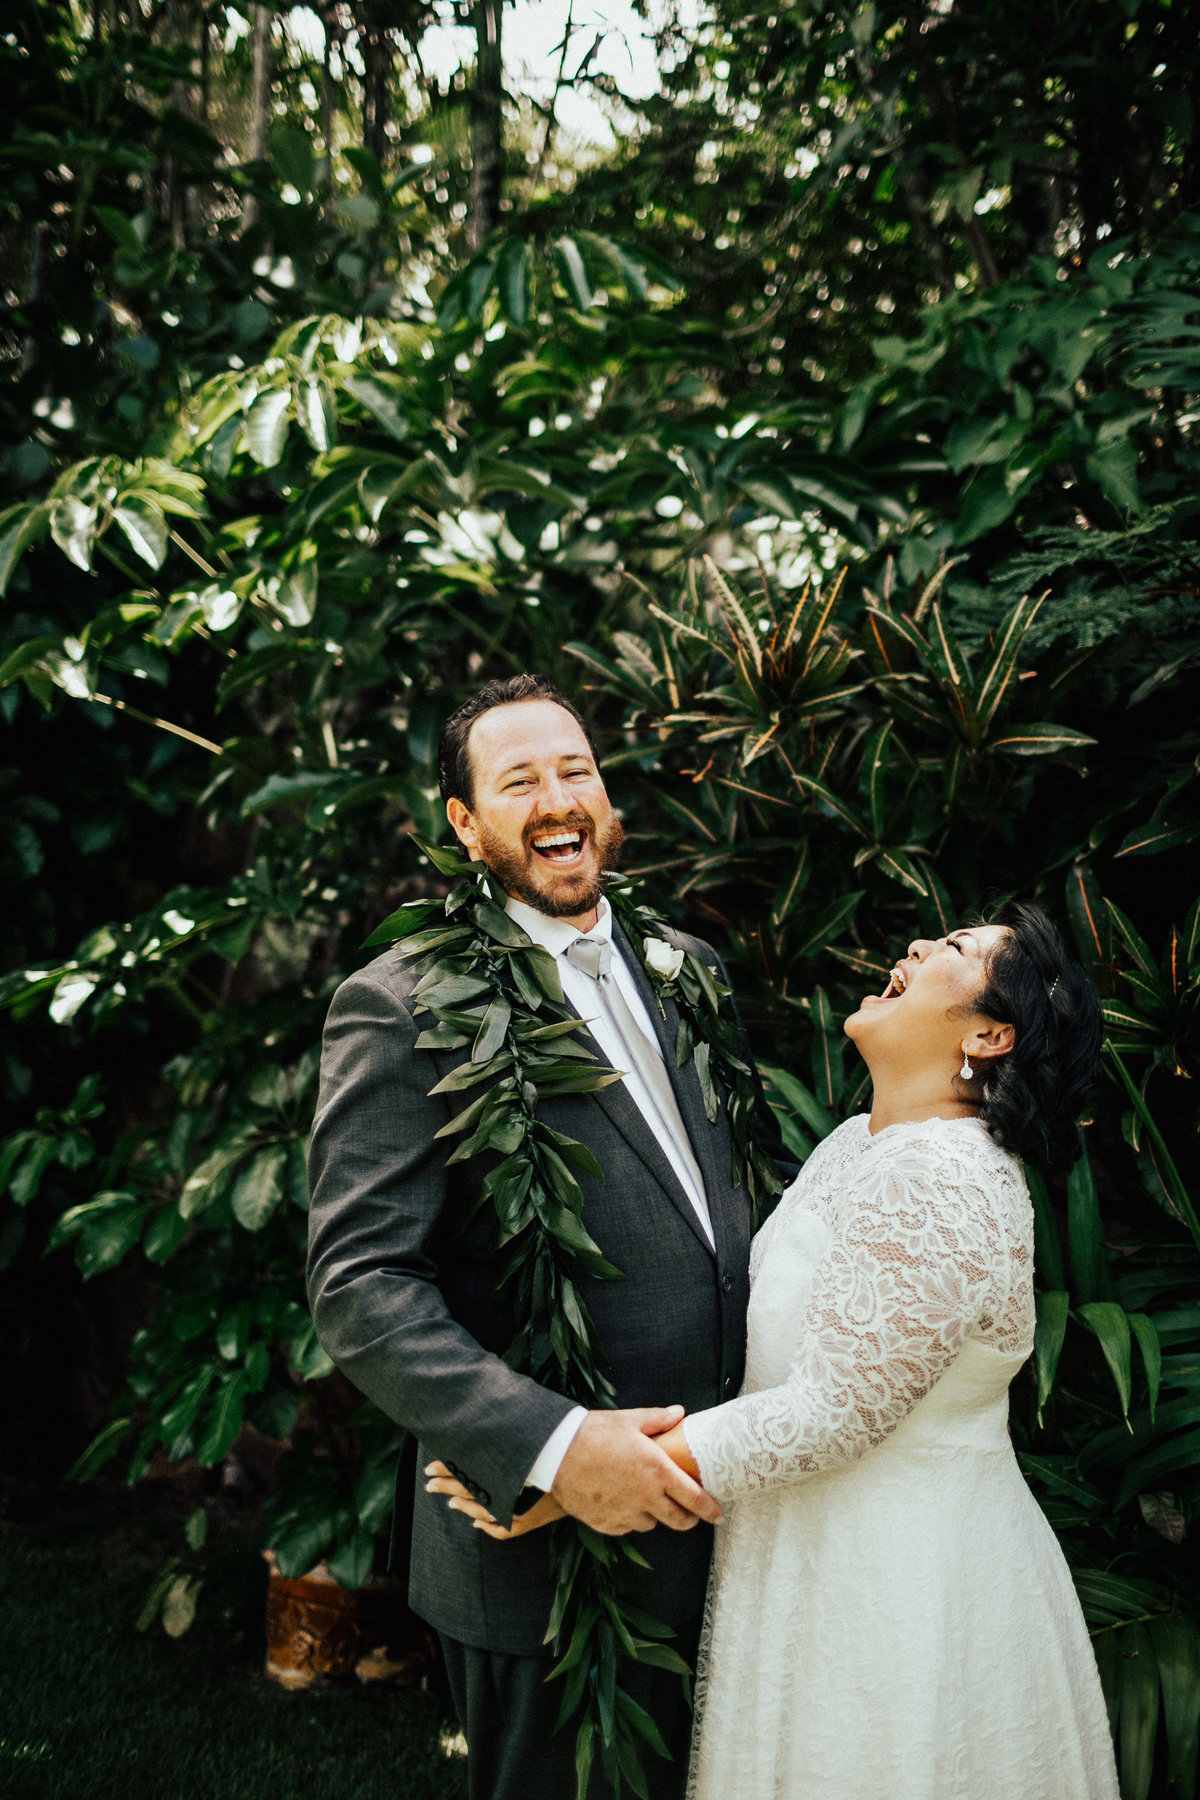 north-shore-oahu-hawaii-lindsey-roman-destination-elopement-photographer-10